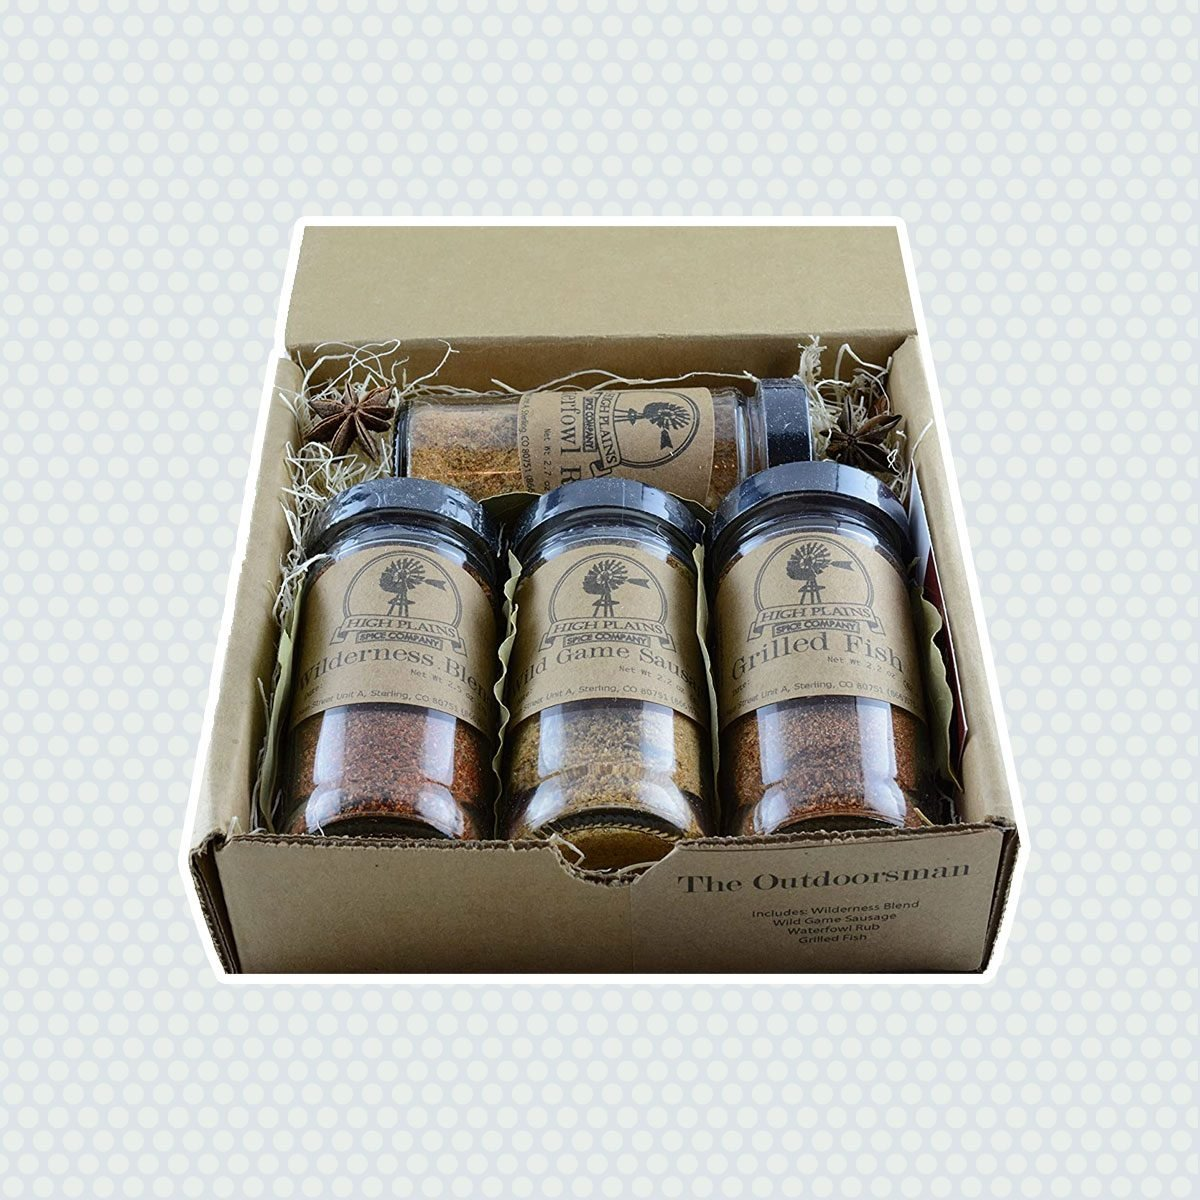 Wild Game Spices Gift Pack